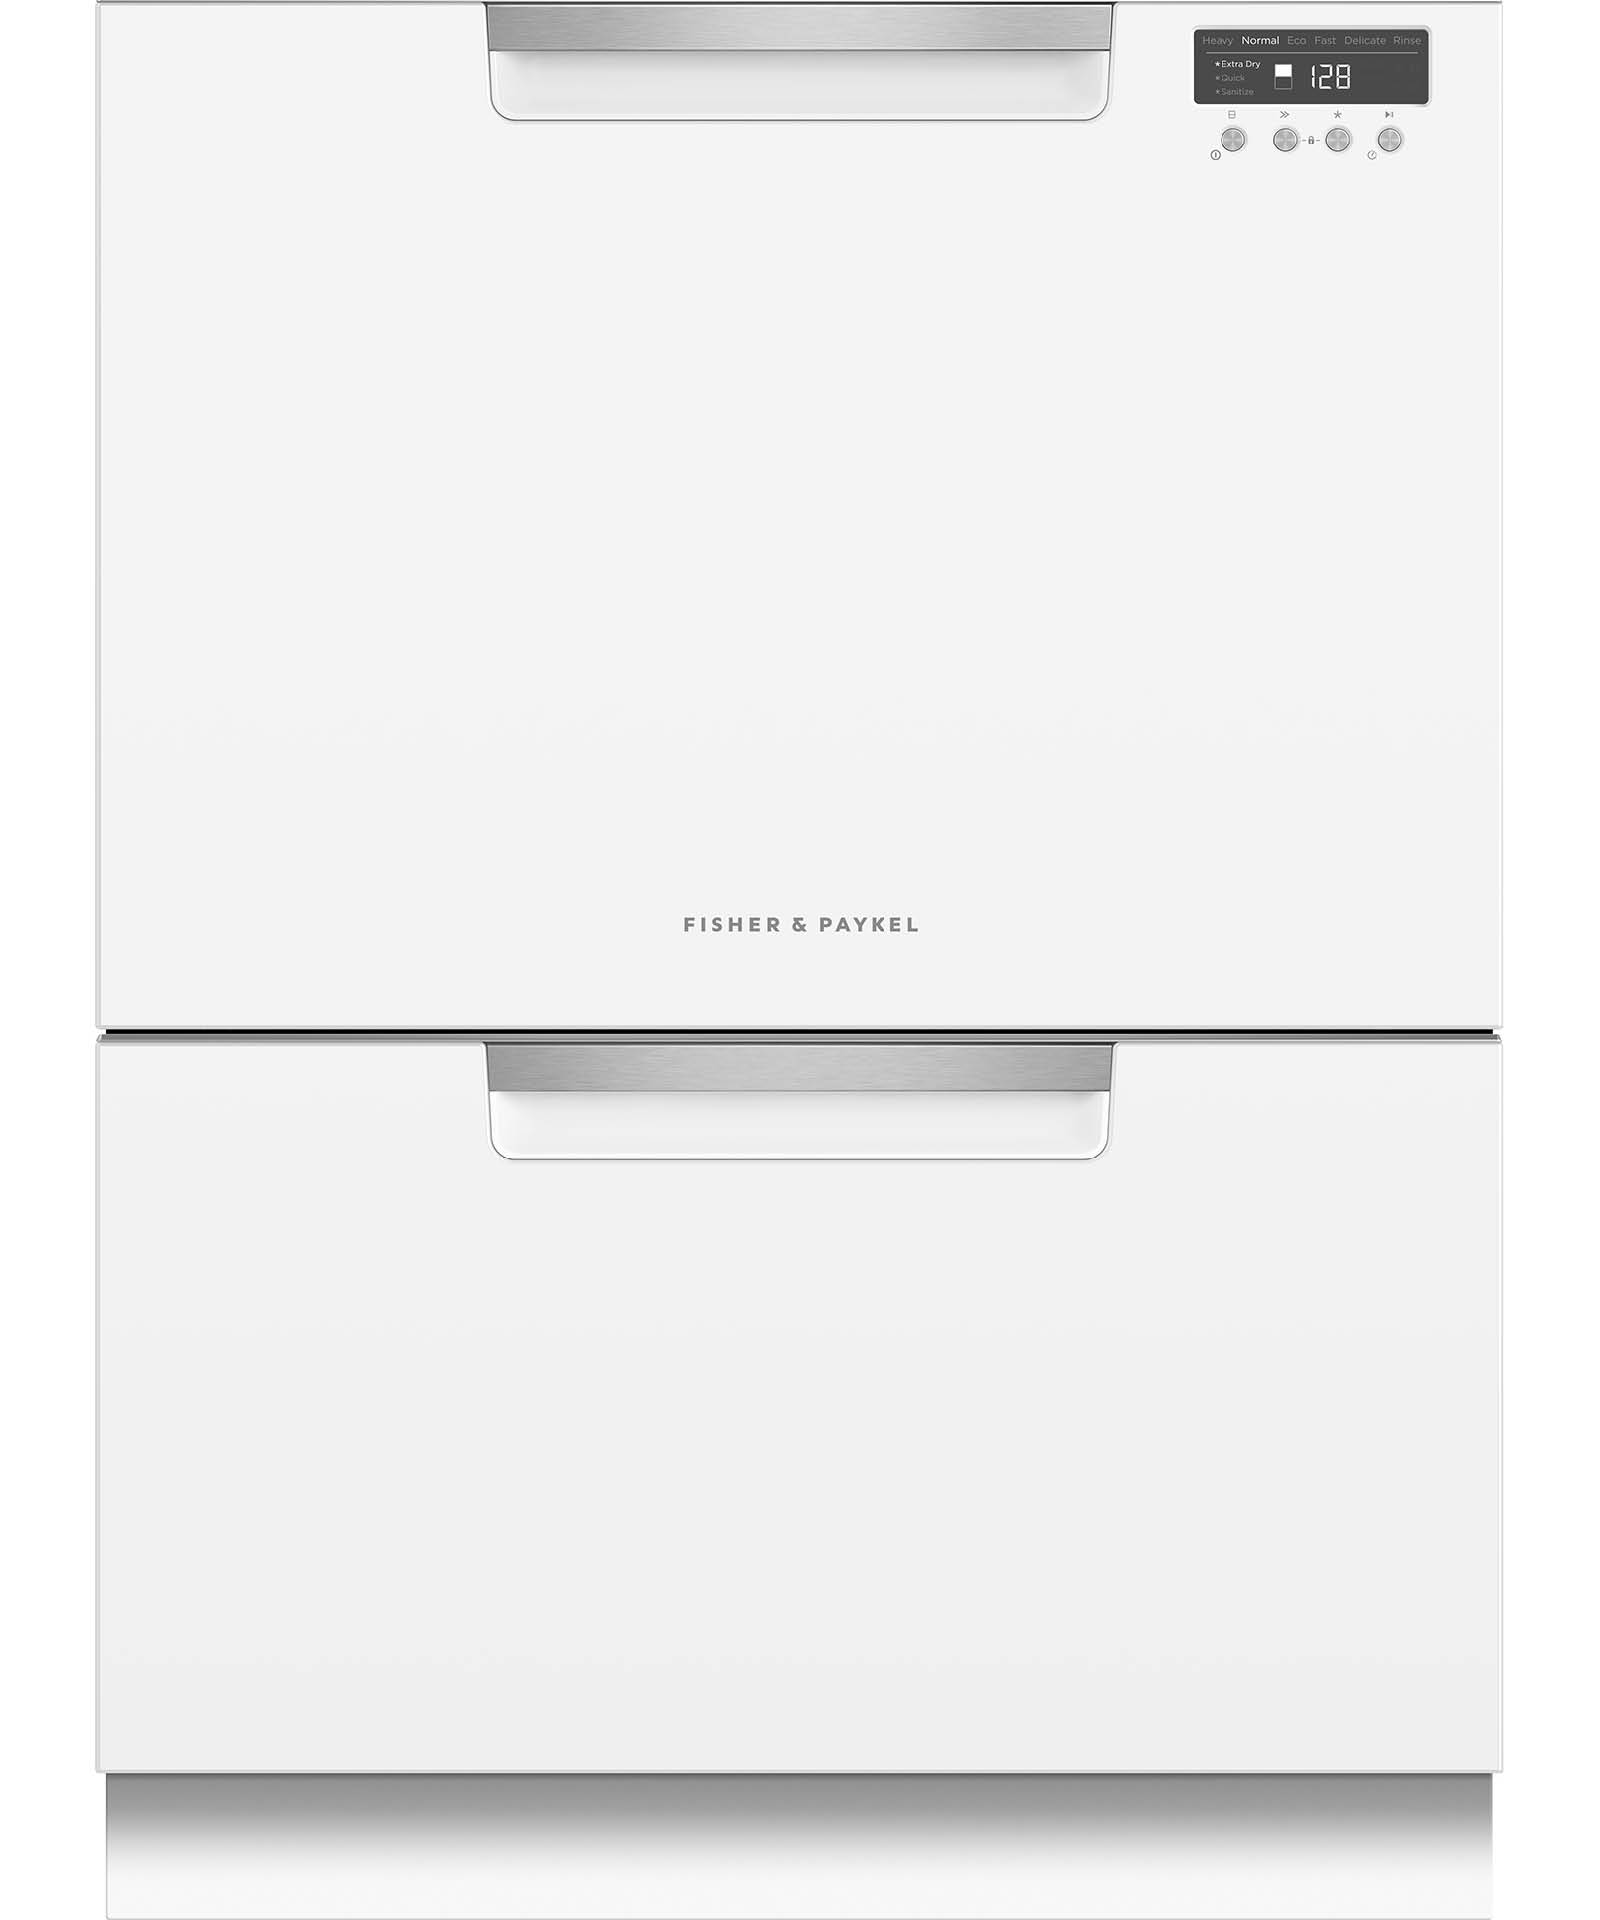 Double DishDrawer, 14 Place Settings, Sanitize (Tall)